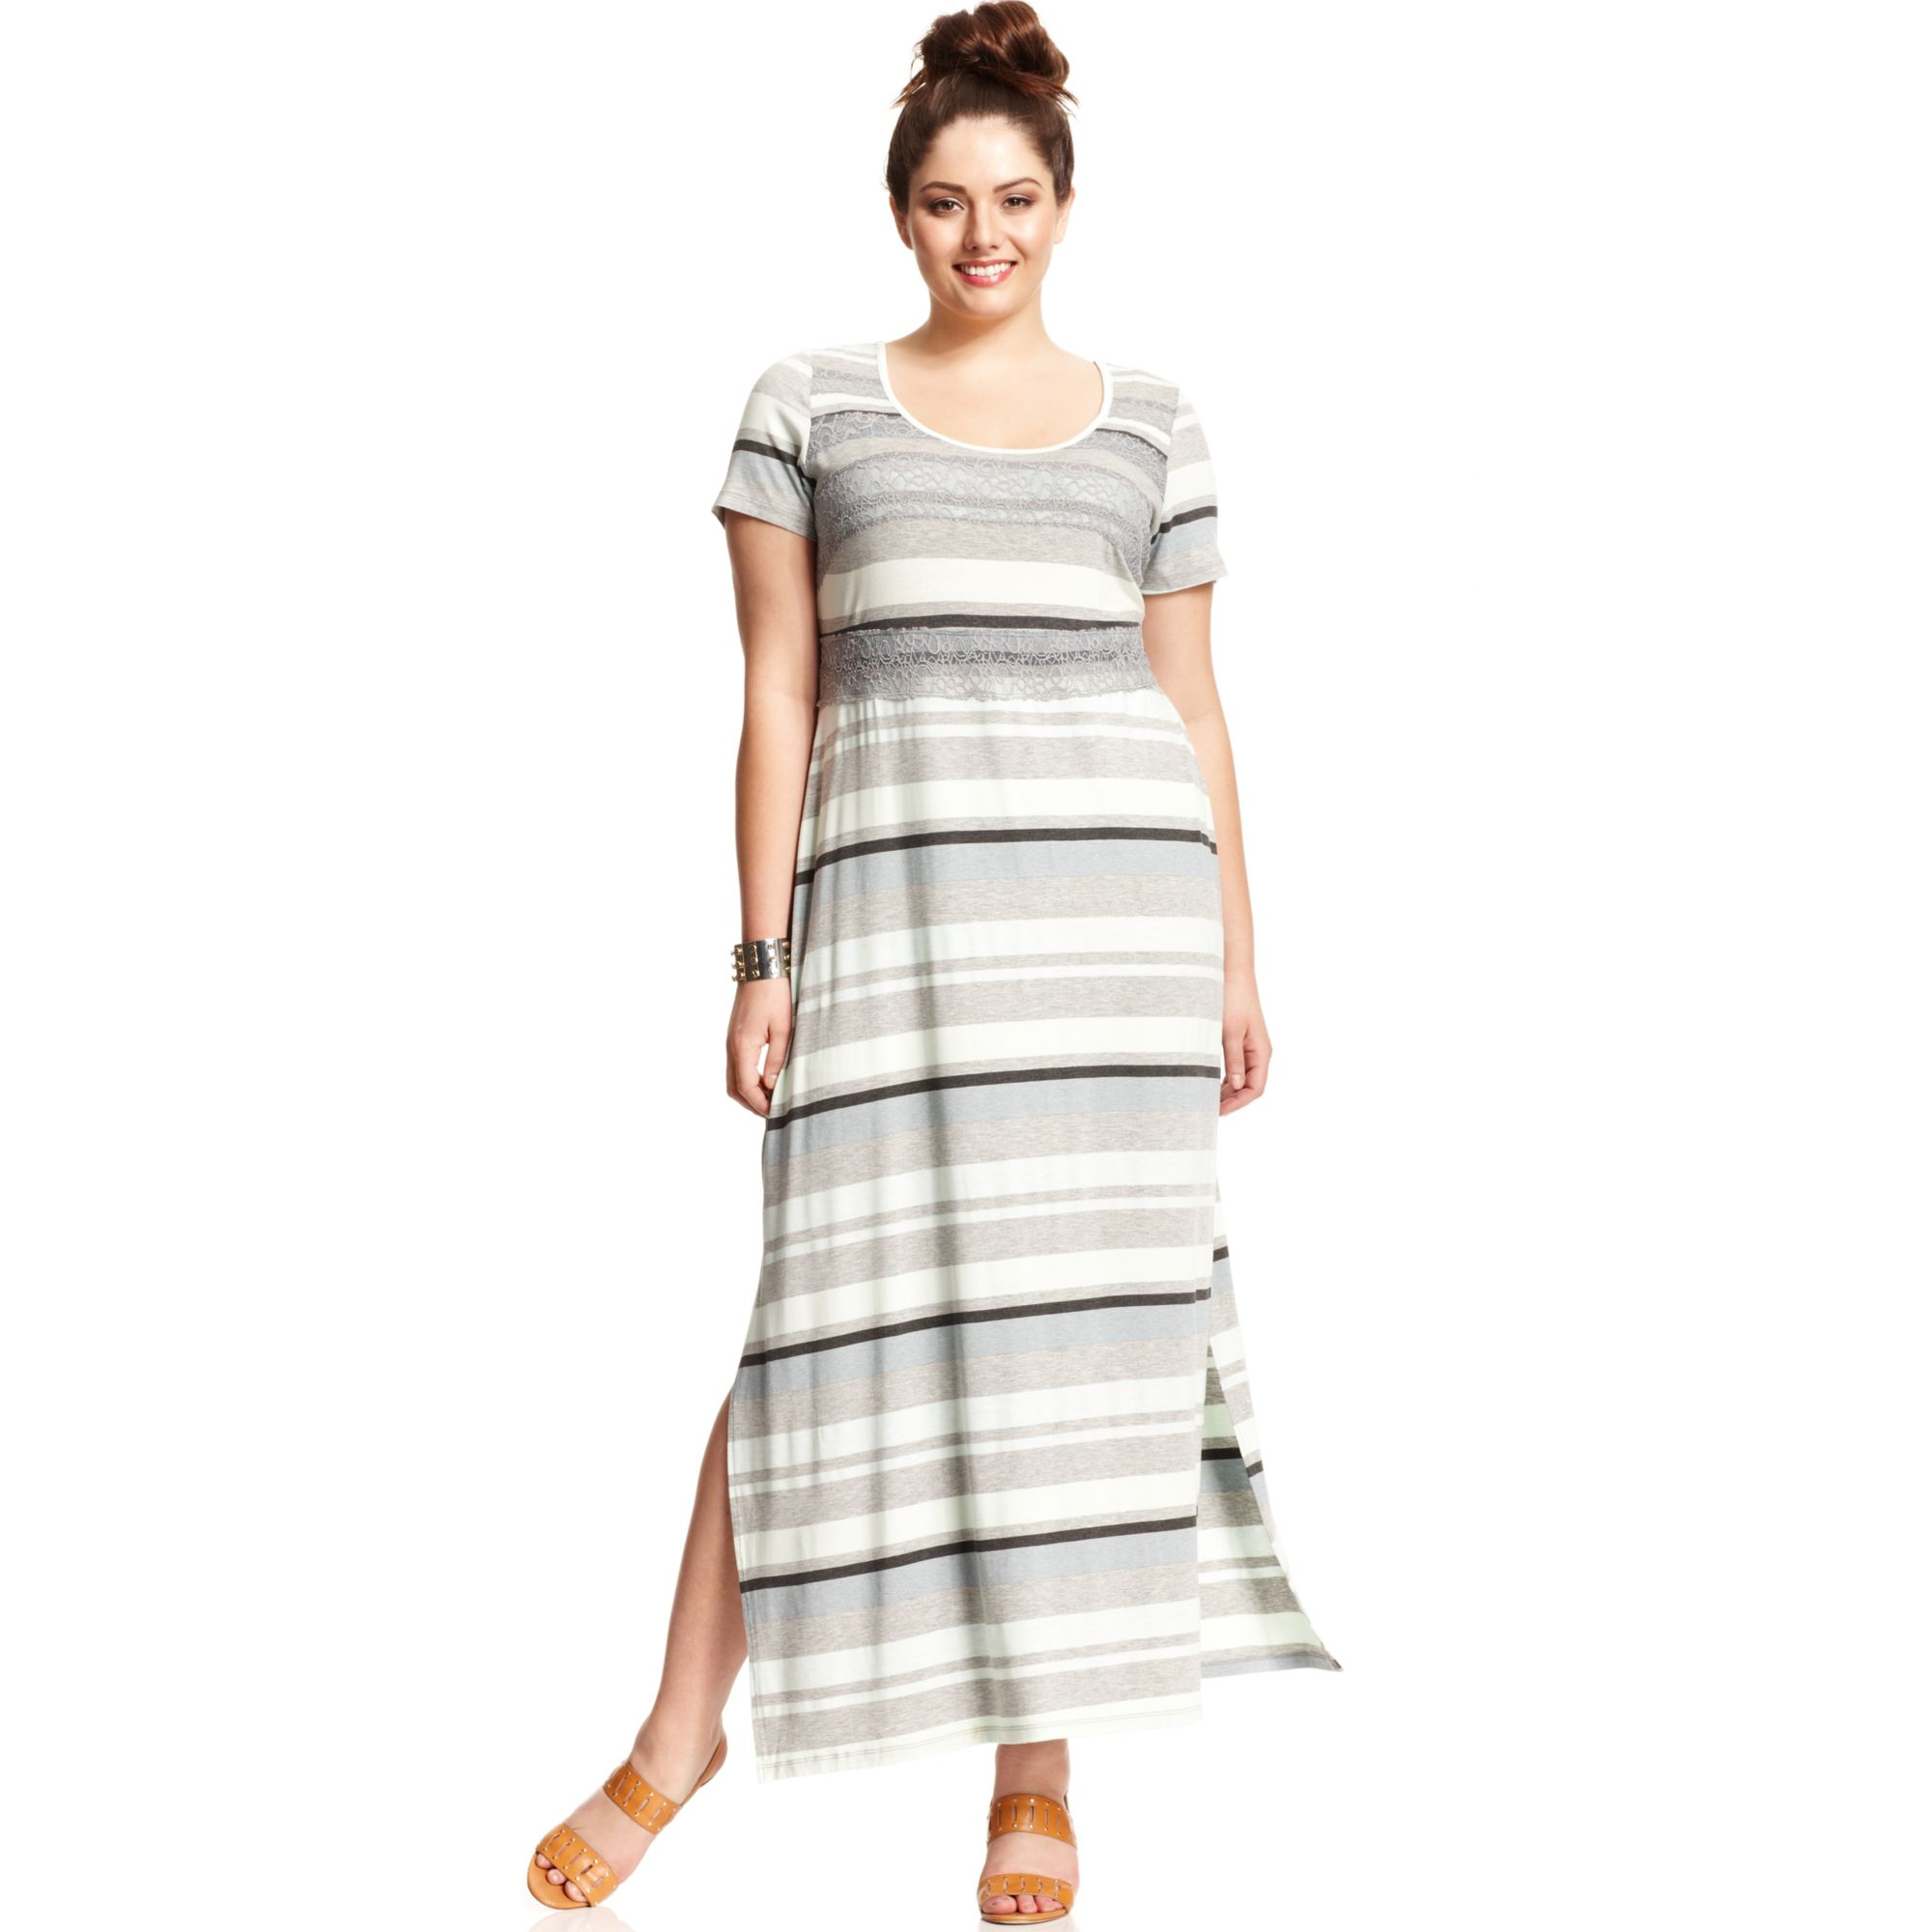 Jessica simpson Plus Size Shortsleeve Striped Maxi Dress in Blue ...